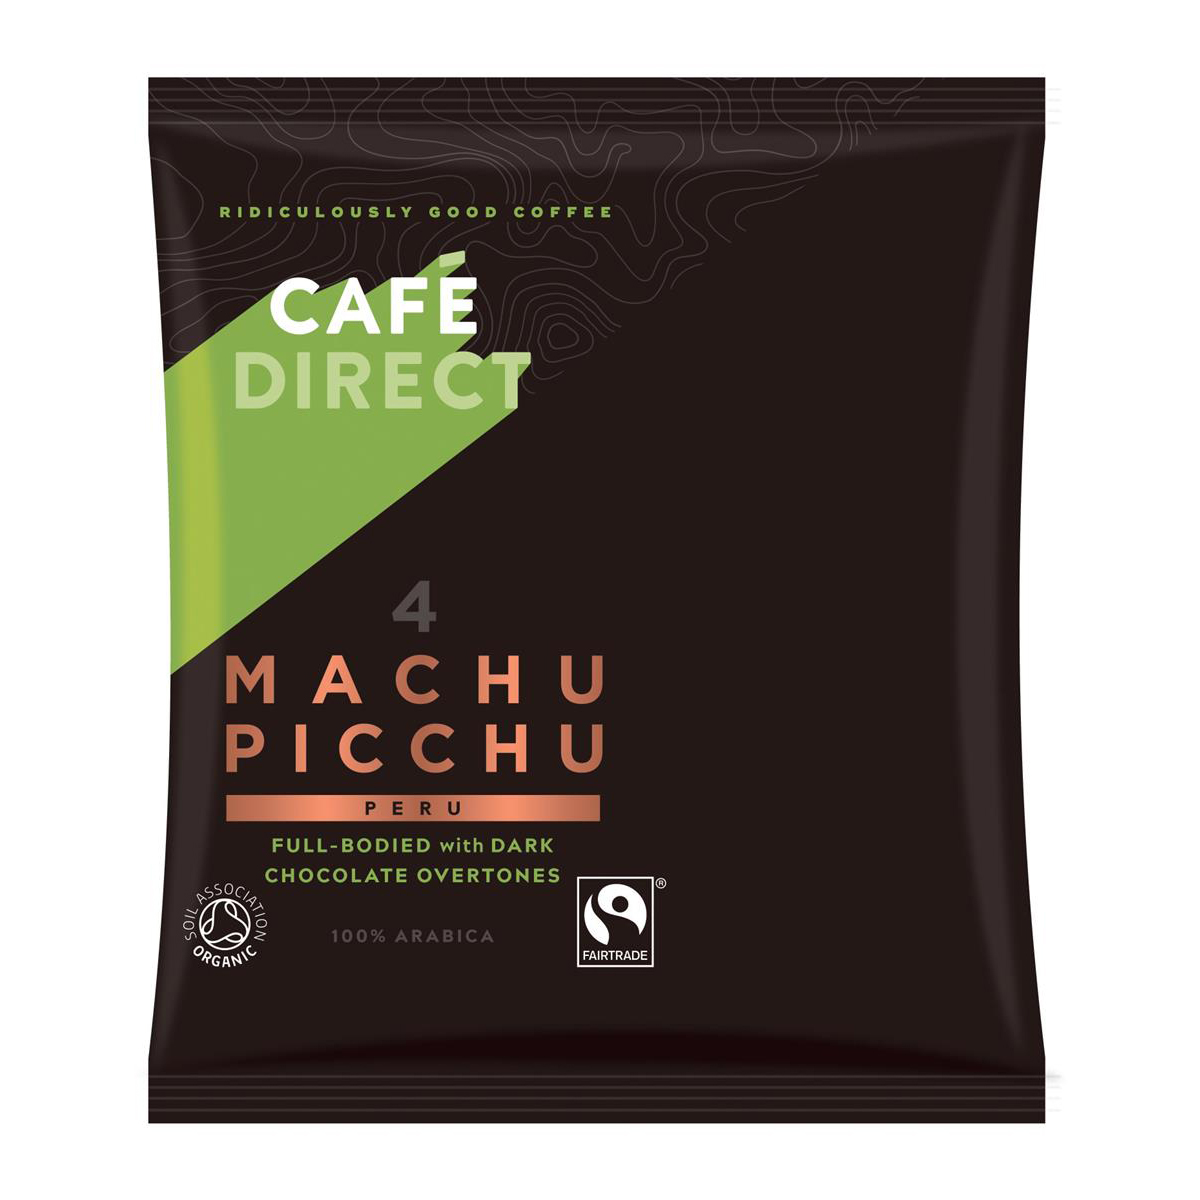 Cafe Direct Machu Picchu Peru Filter Coffee 60g Sachet Ref FCR1011 Pack 45